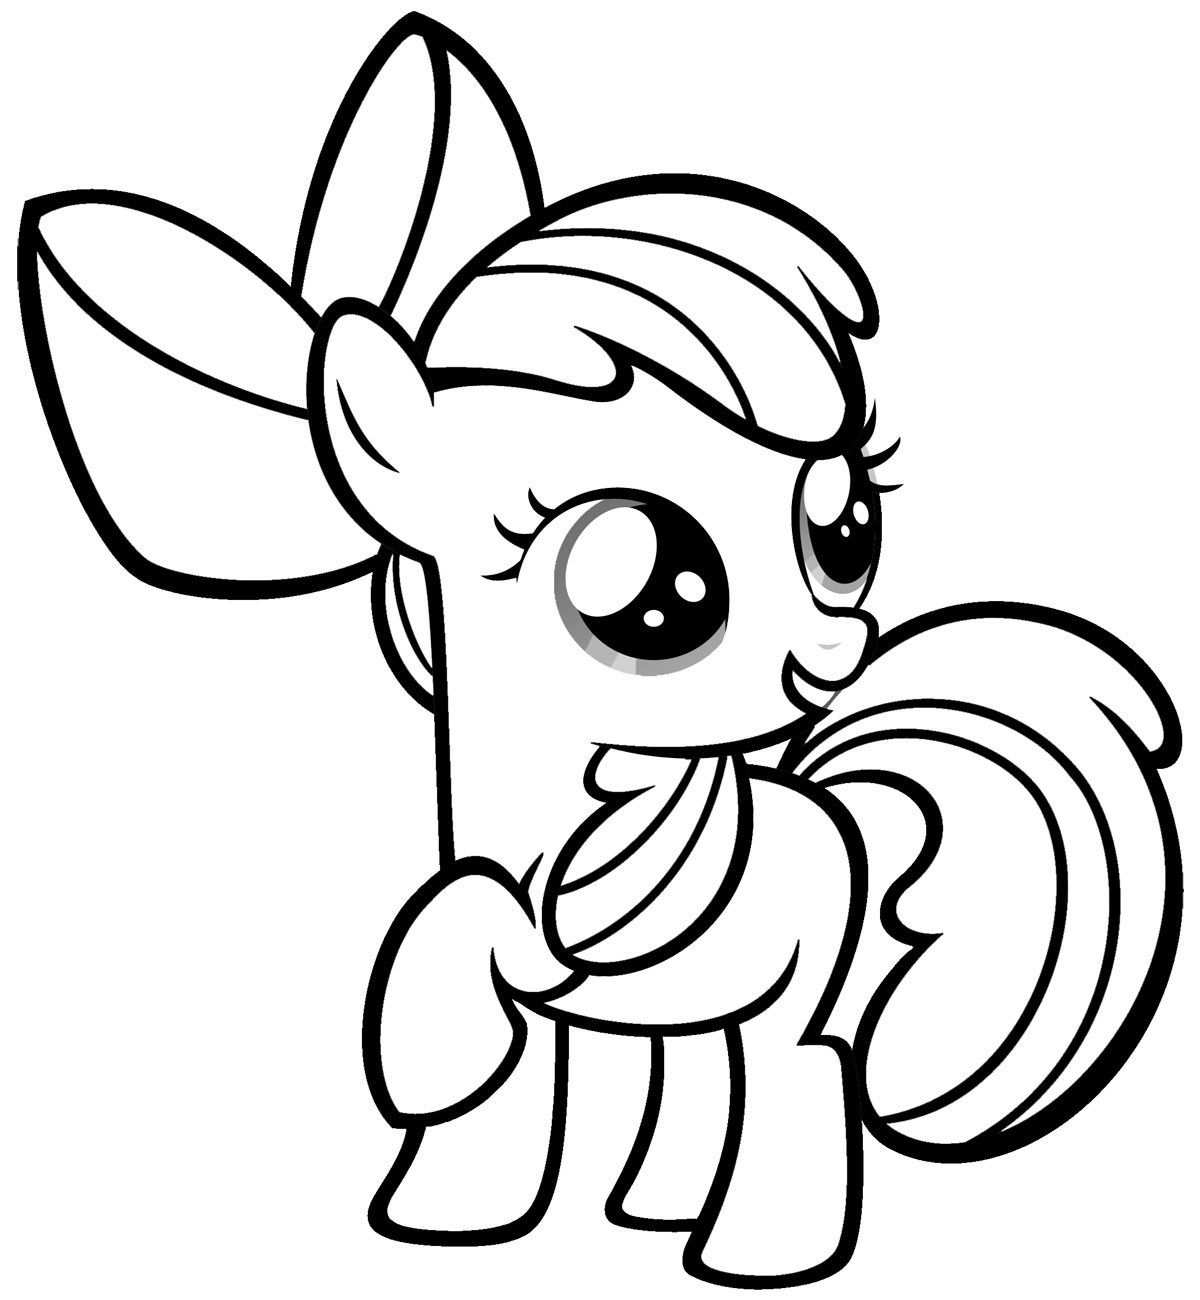 ponny coloring pages Free Printable My Little Pony Coloring Pages For Kids | Books  ponny coloring pages